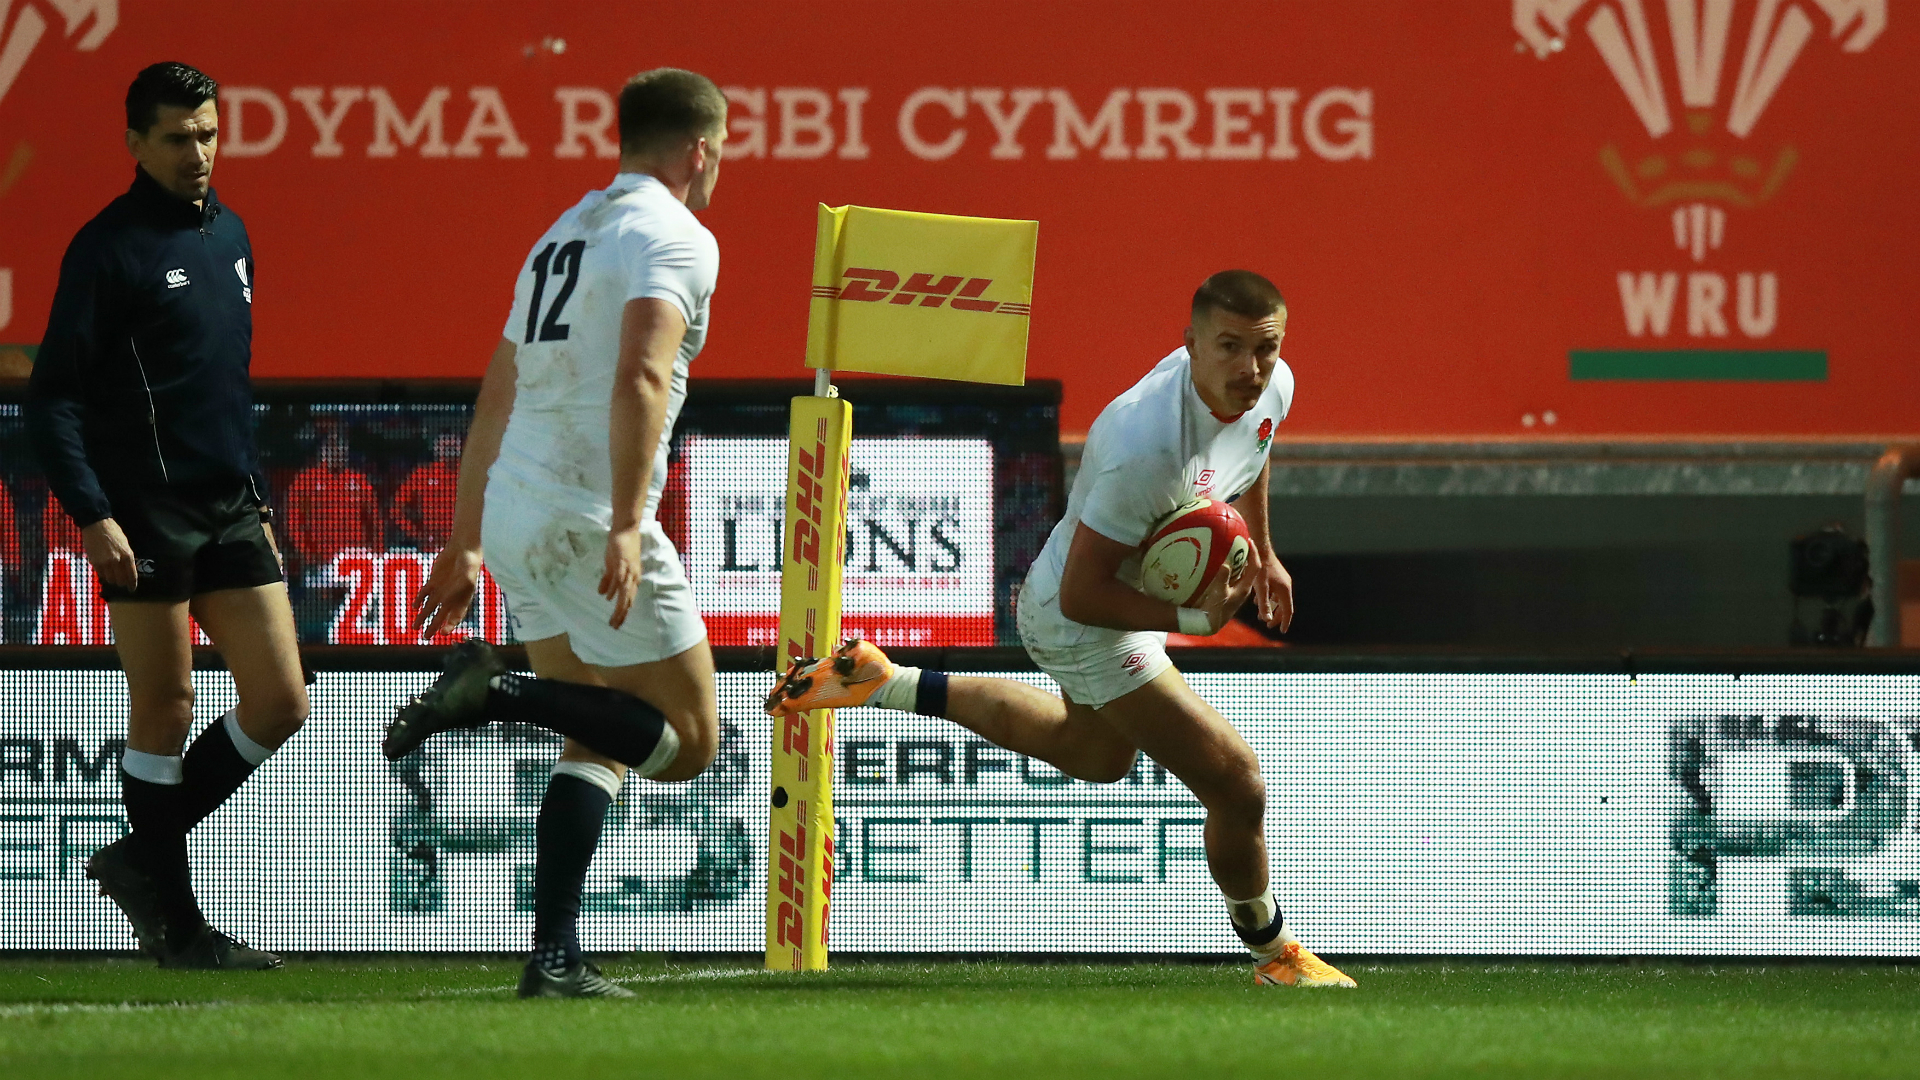 Owen Farrell booted 14 points and could afford to miss a couple of kicks as Eddie Jones' England won comfortably enough in Wales.